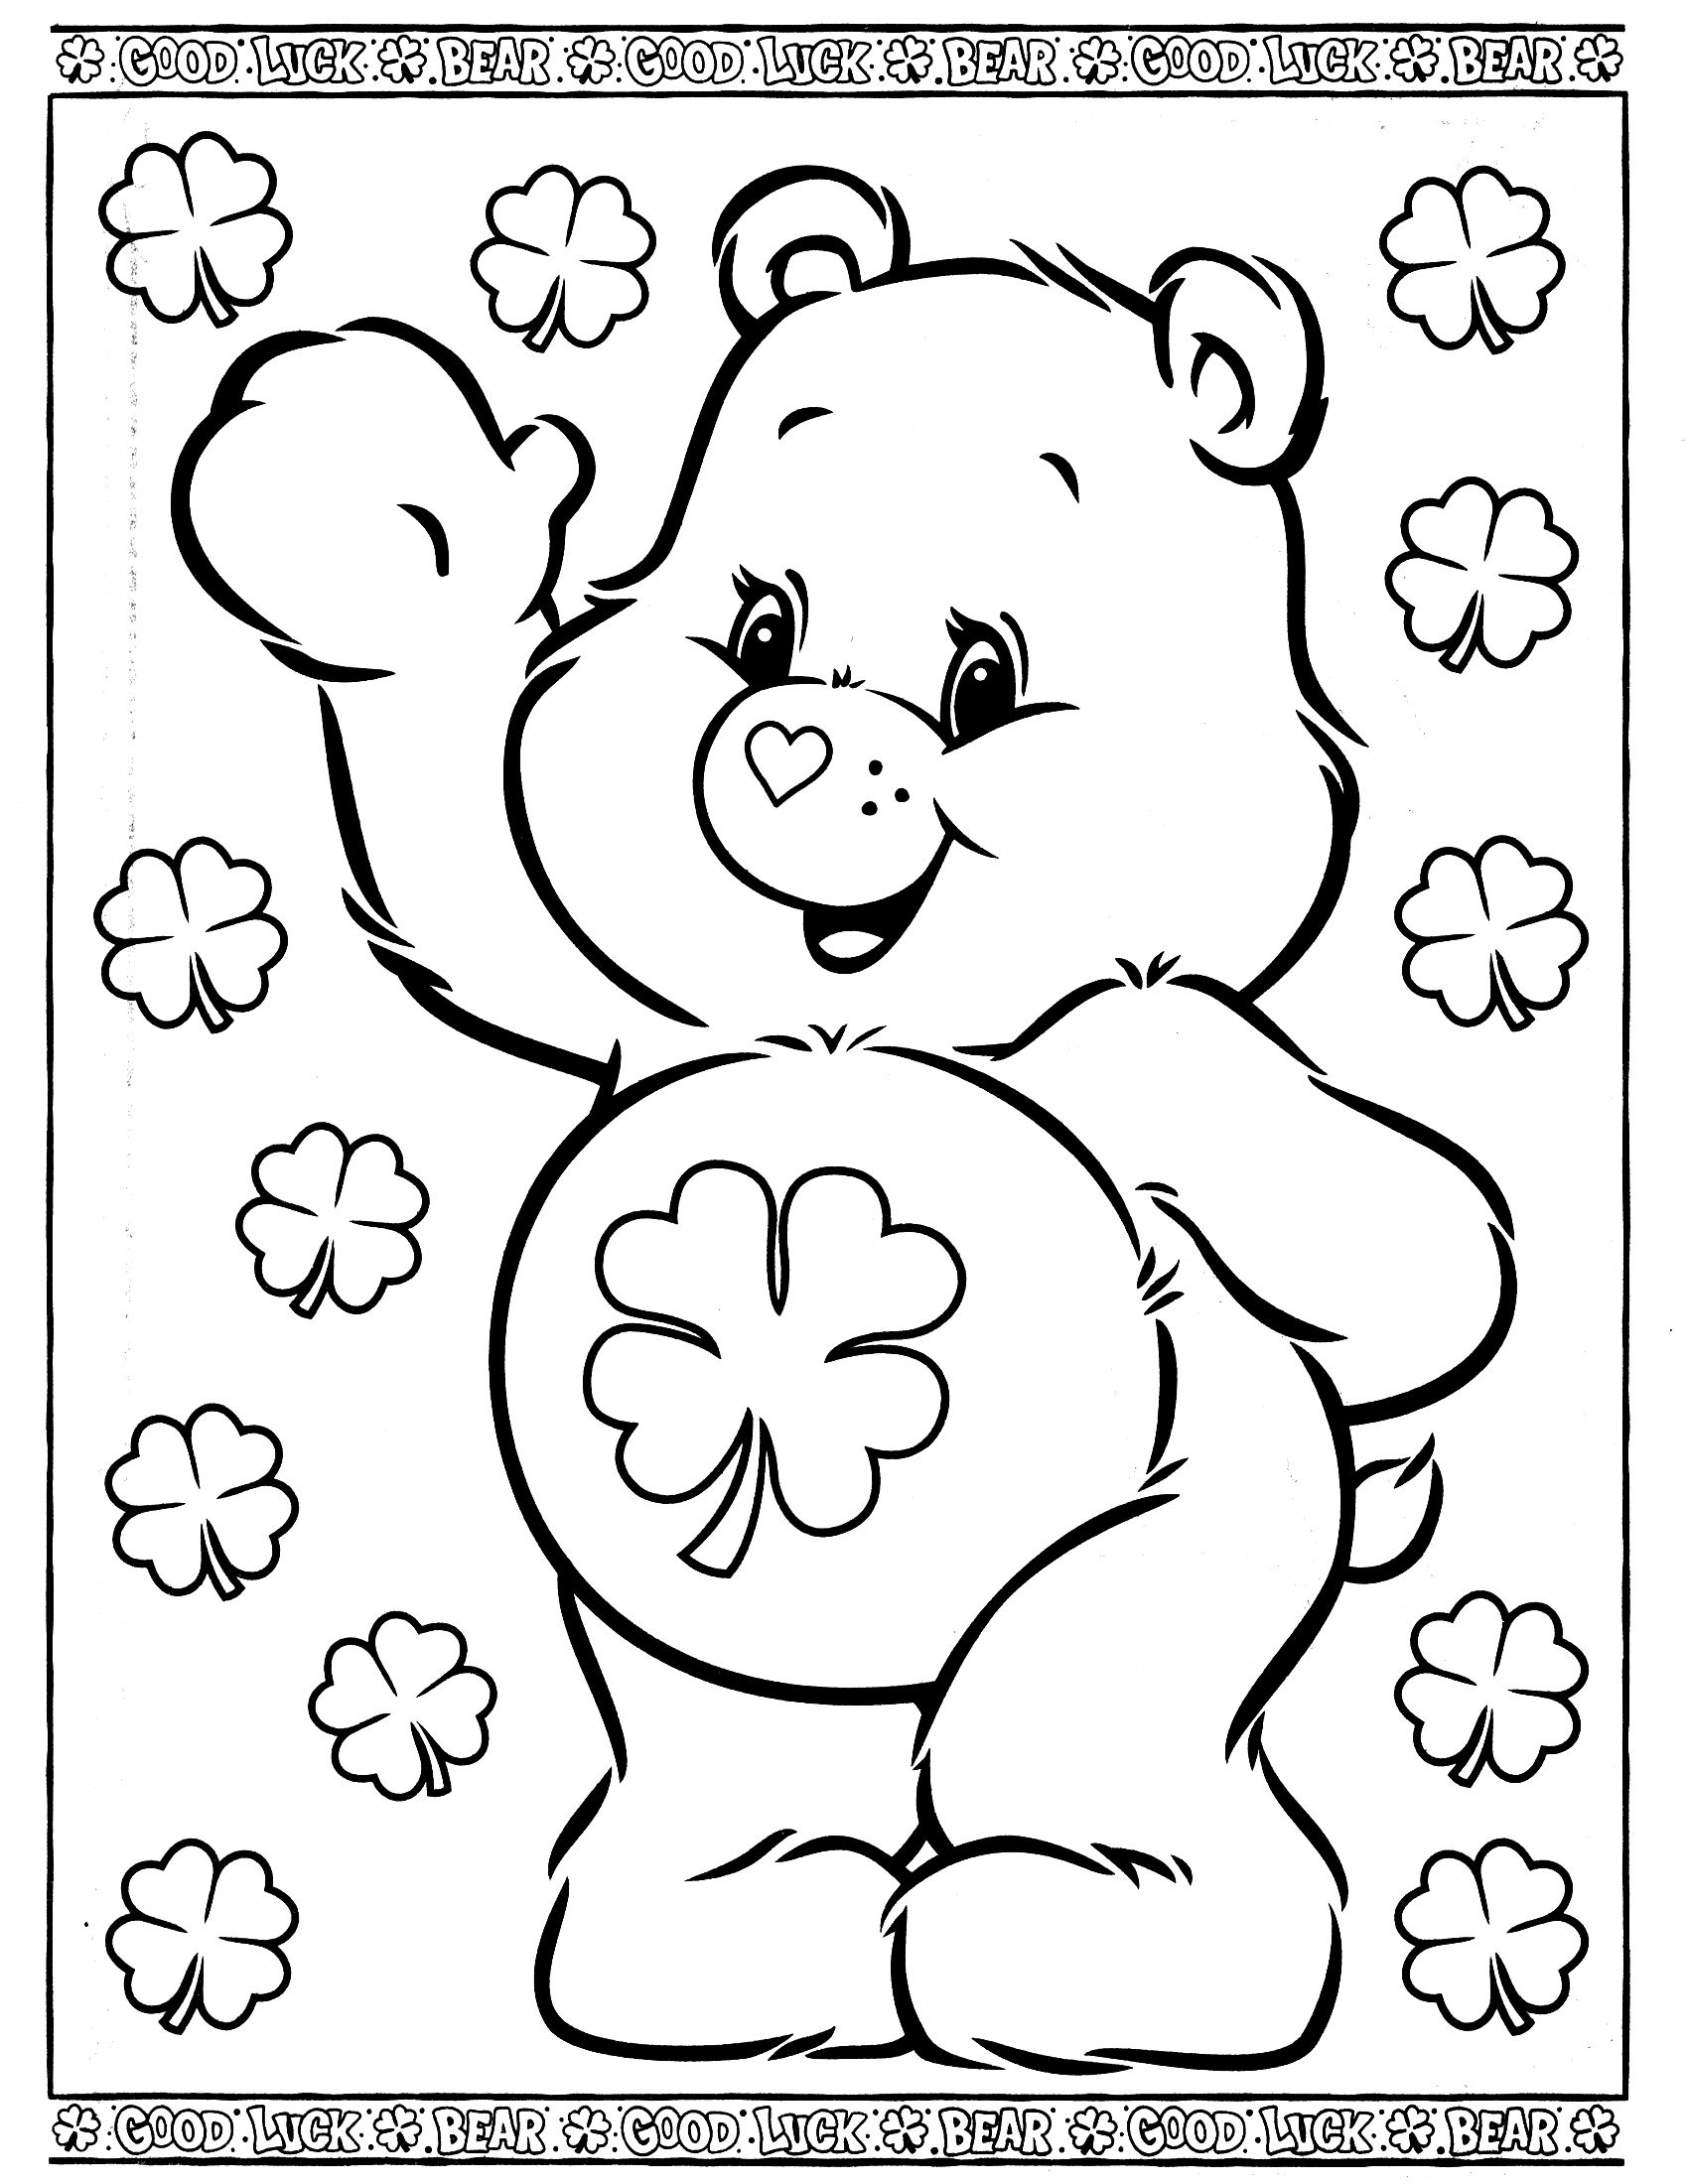 Care Bears 29 Coloringcolor Com Bear Coloring Pages Teddy Bear Coloring Pages Coloring Books